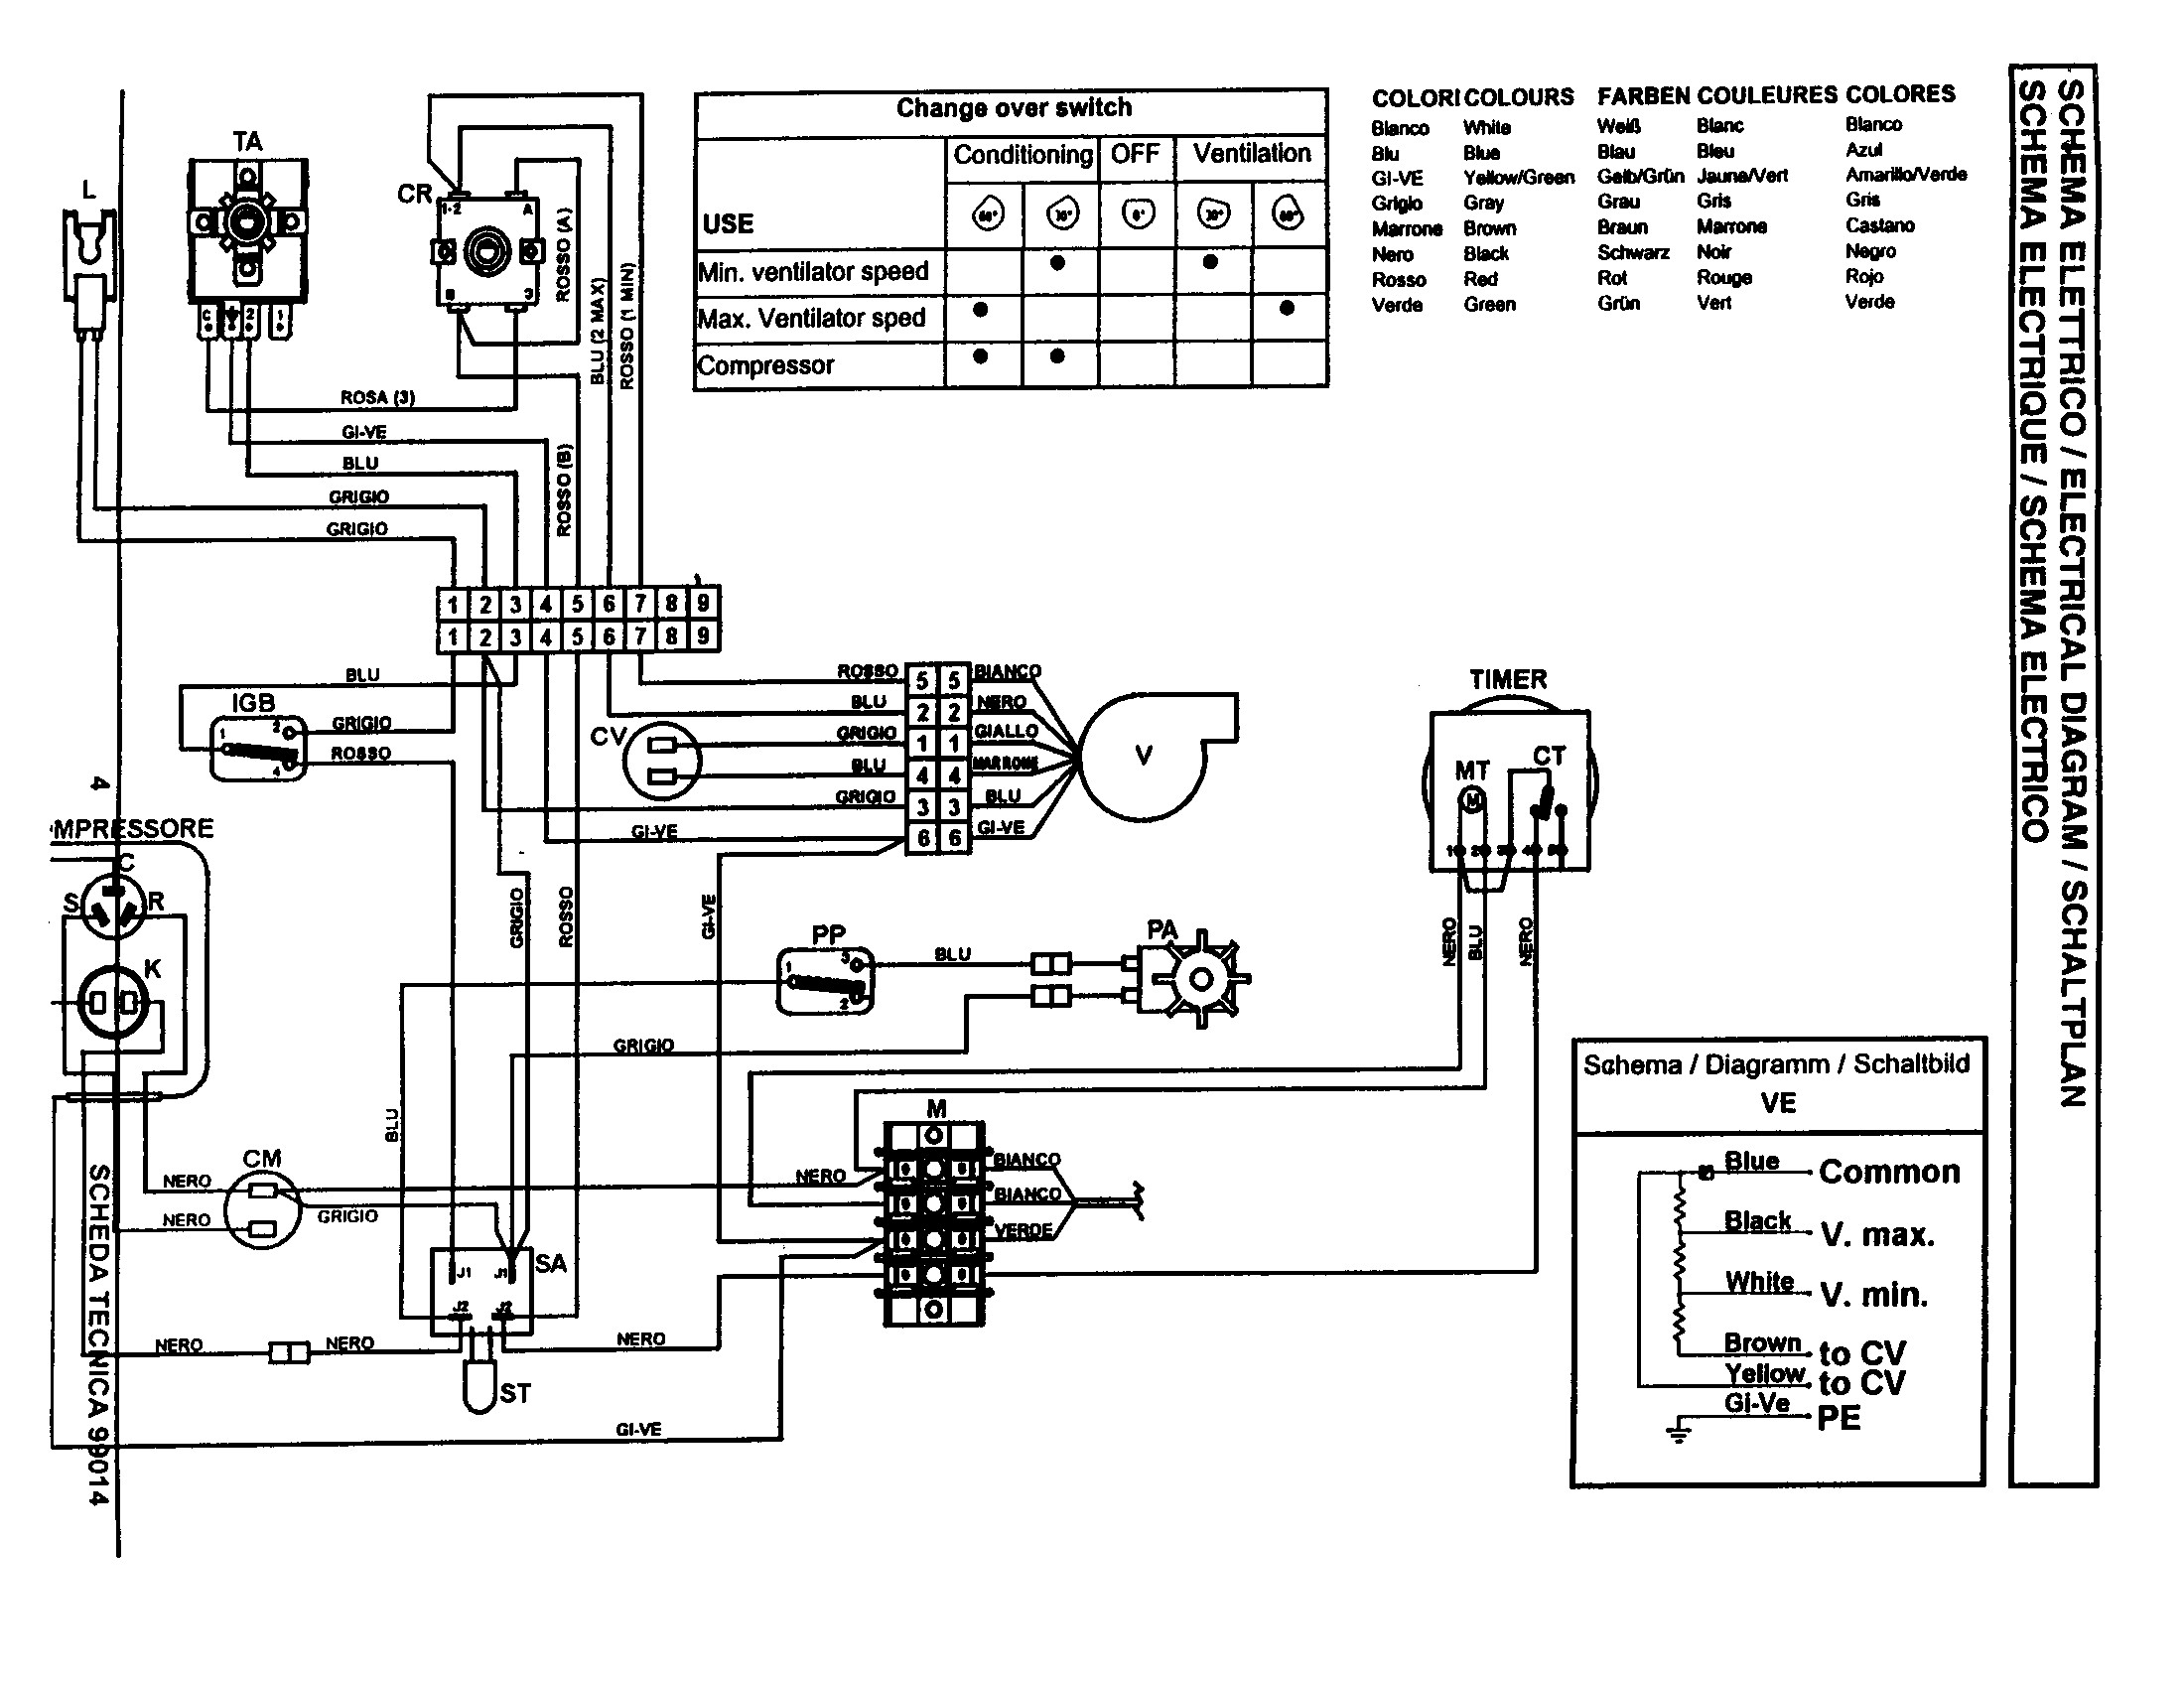 Wiring Diagram For York Air Conditioner - Wiring Diagram Dash on goodman diagram fatigue, goodman calculation diagram, goodman gas furnace diagram, goodman furnace thermostat wiring, goodman ac units, air handler diagram, goodman air handler thermostat wiring, heating and ac diagram, wiring a room diagram, goodman condenser wiring-diagram, goodman heat pump parts diagram, goodman package units diagram, goodman circuit board diagram, air conditioning heat pump diagram, goodman heat sequencer wire diagram, goodman wiring schematics, goodman air conditioner schematic diagram, goodman mfg wiring diagrams, goodman air handler low voltage connections,